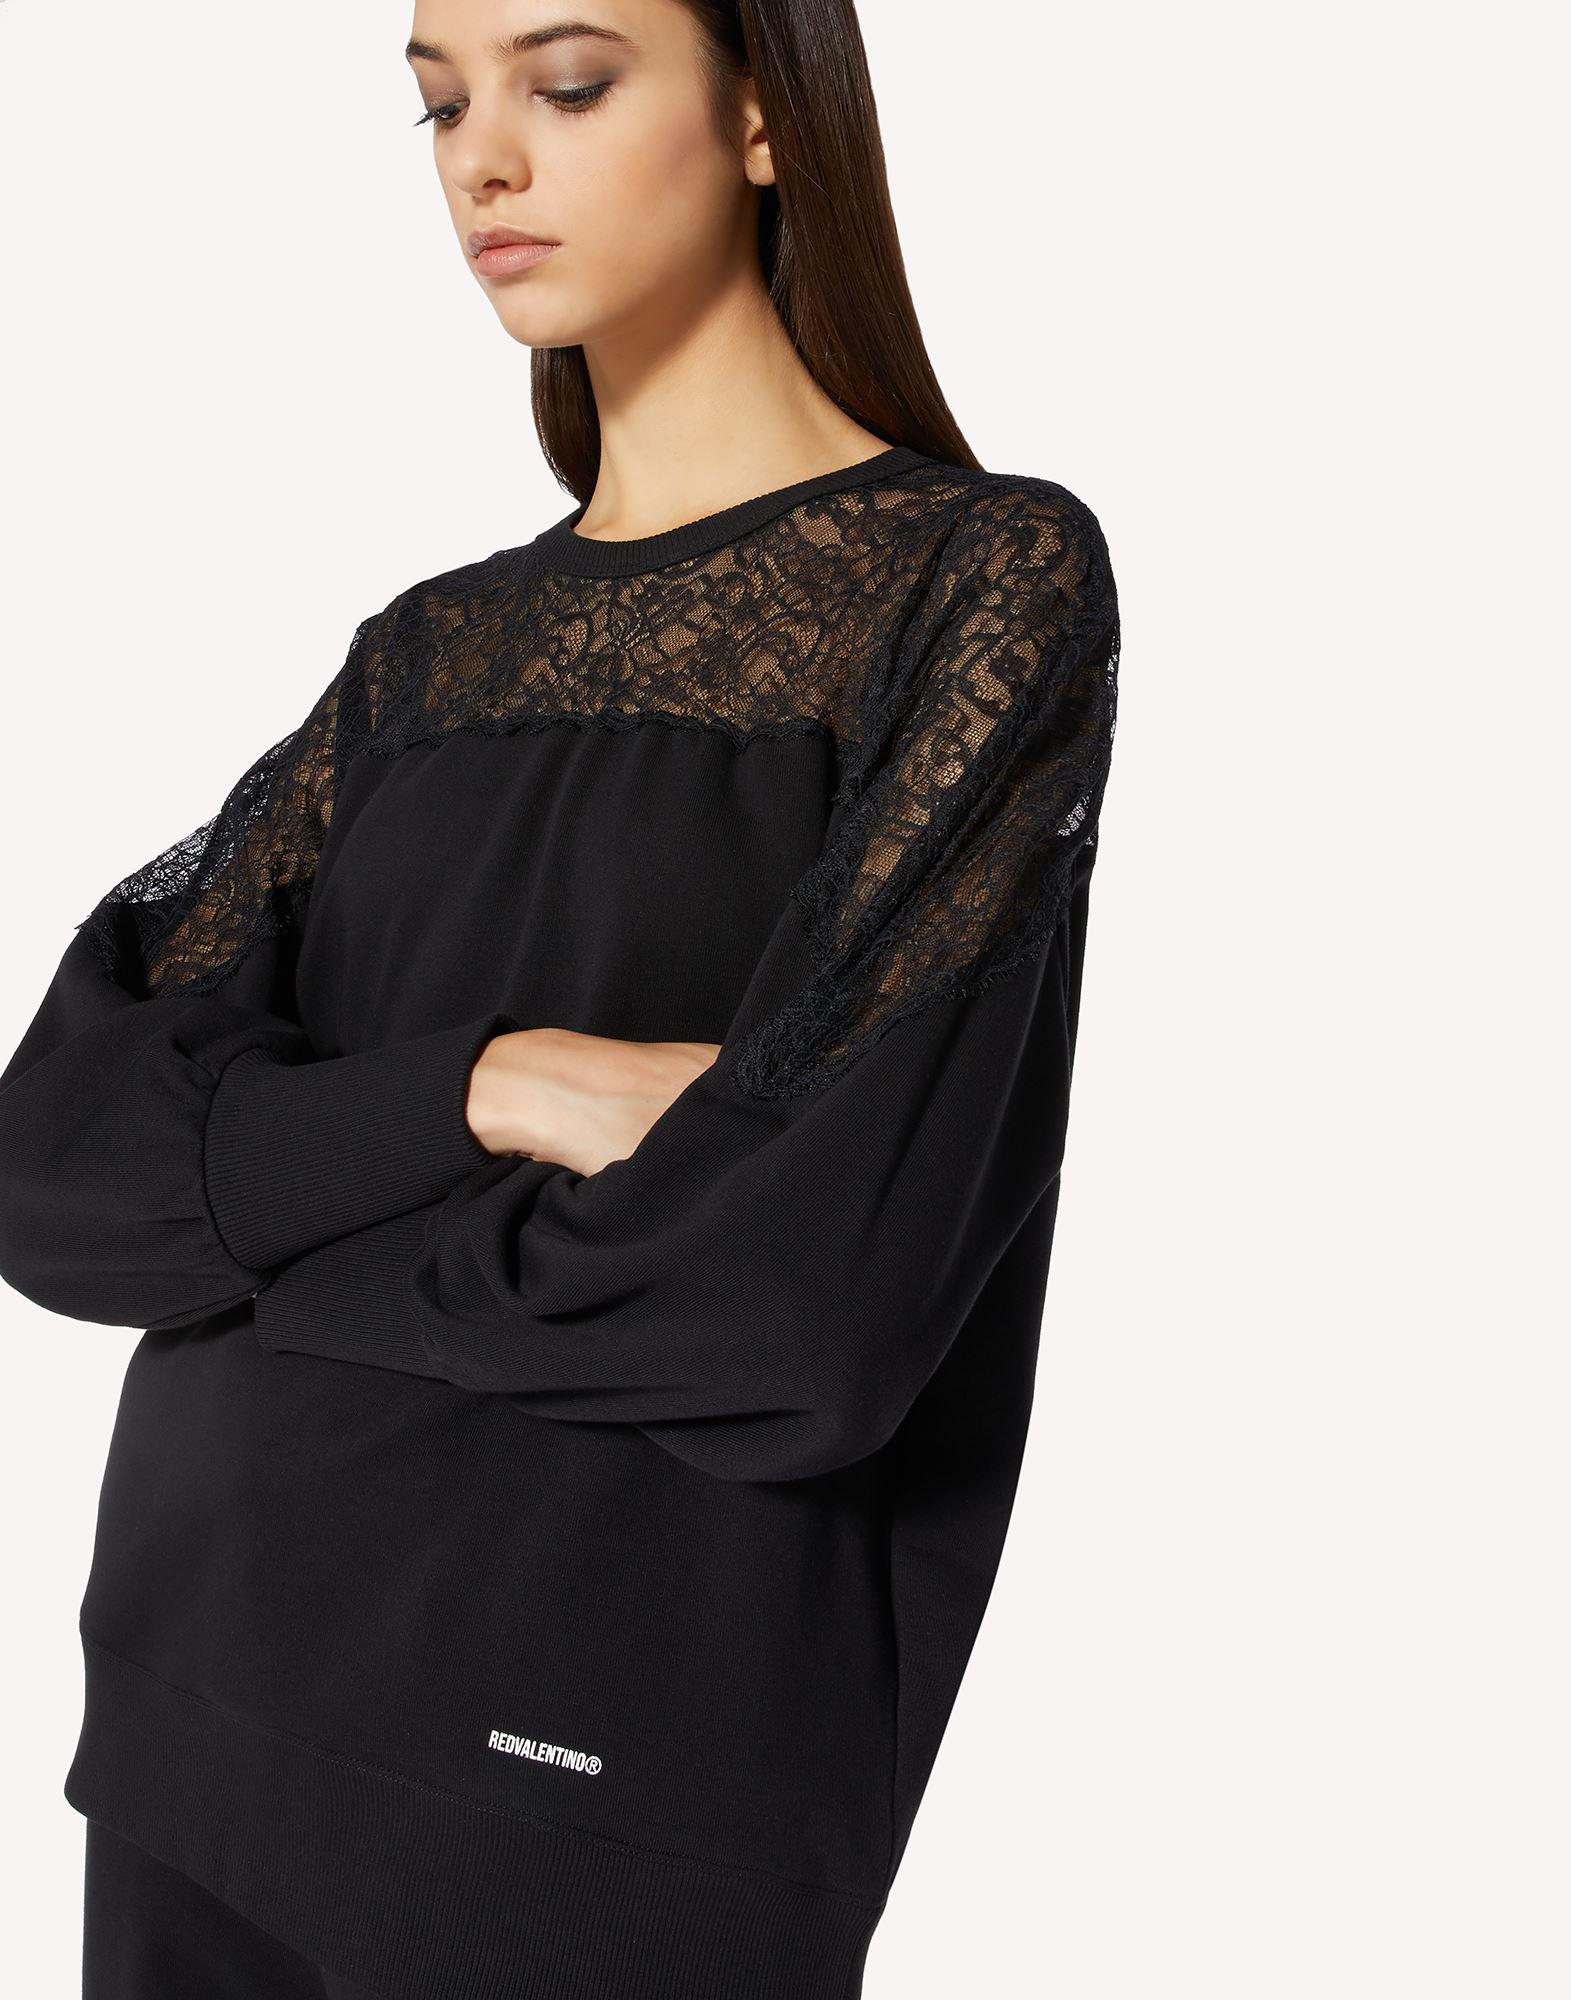 SWEATSHIRT WITH LACE 3